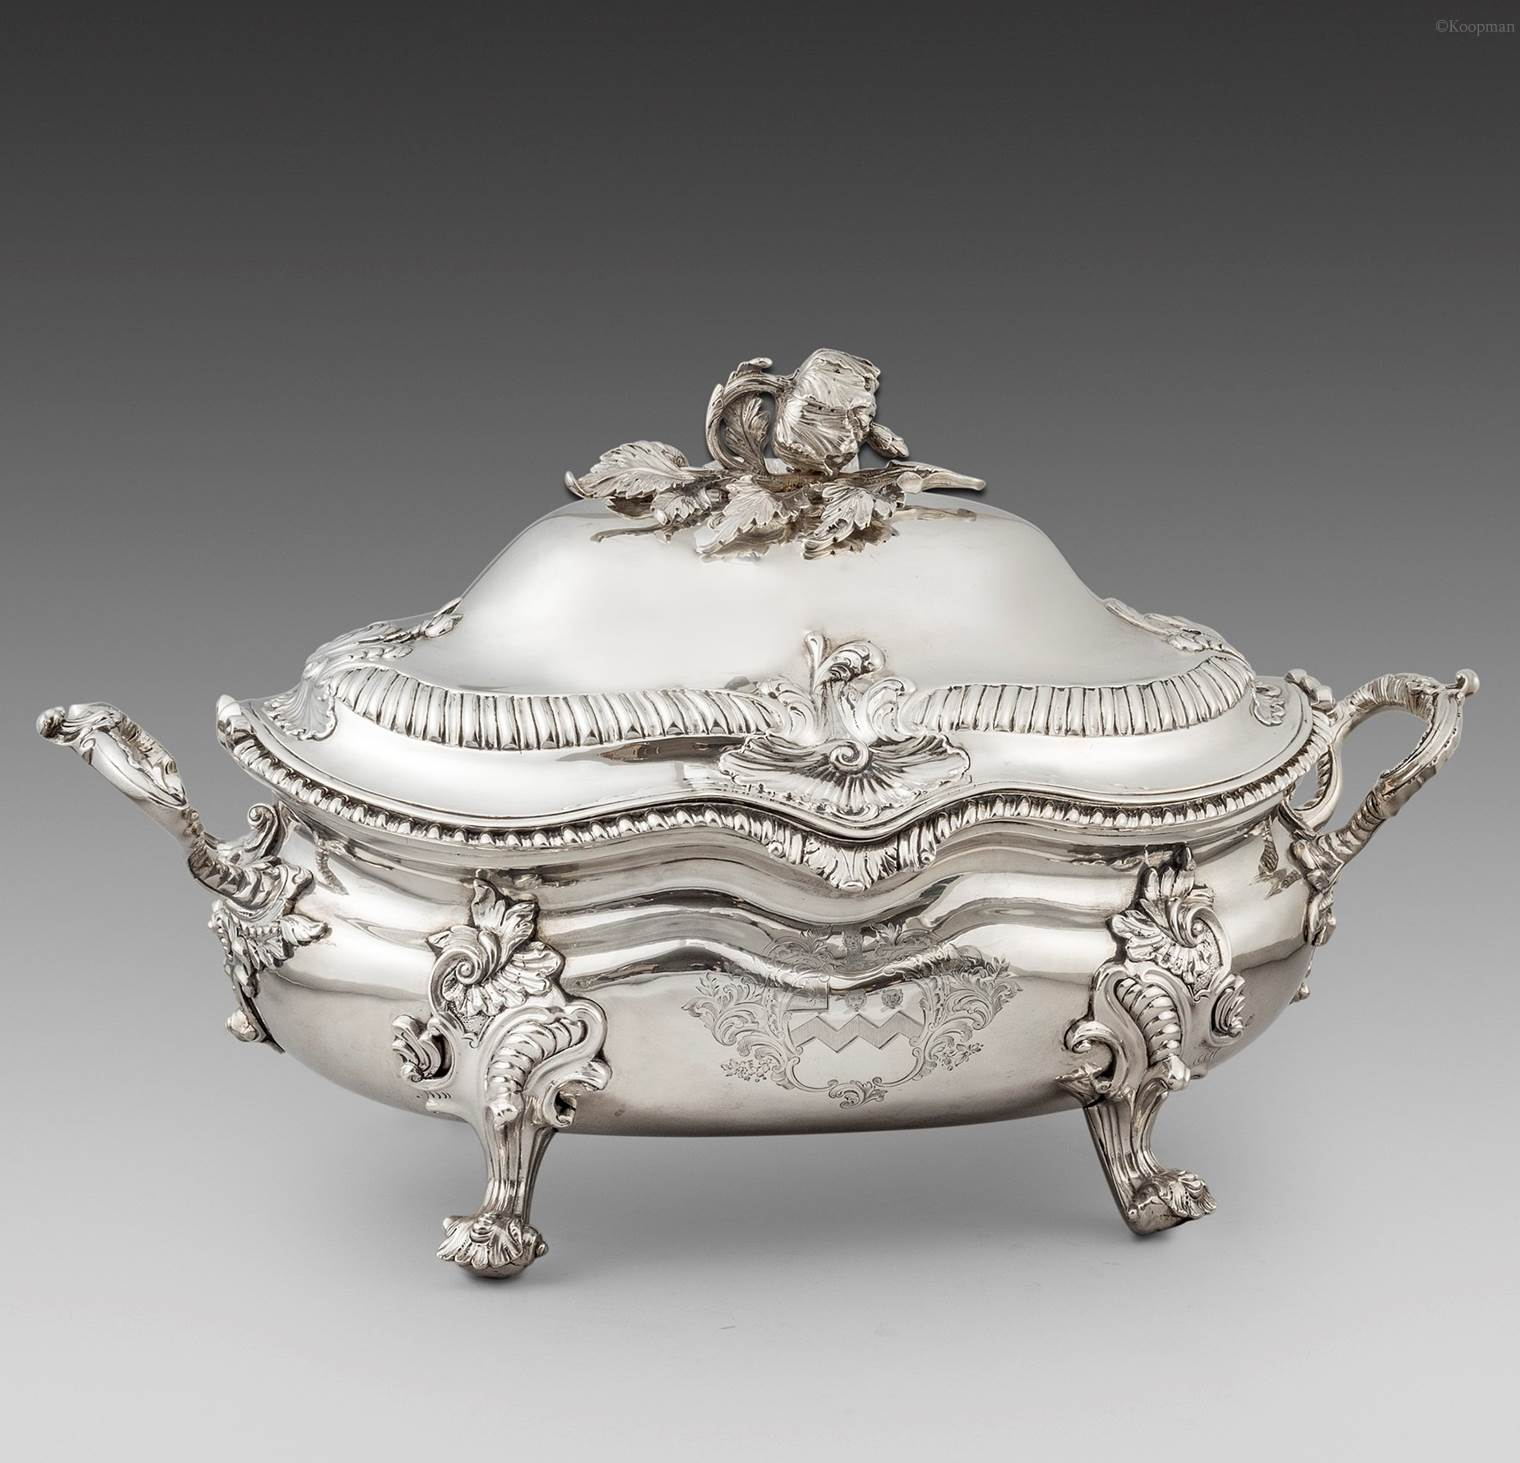 A Pair of Victorian 'Rococo' Soup Tureens